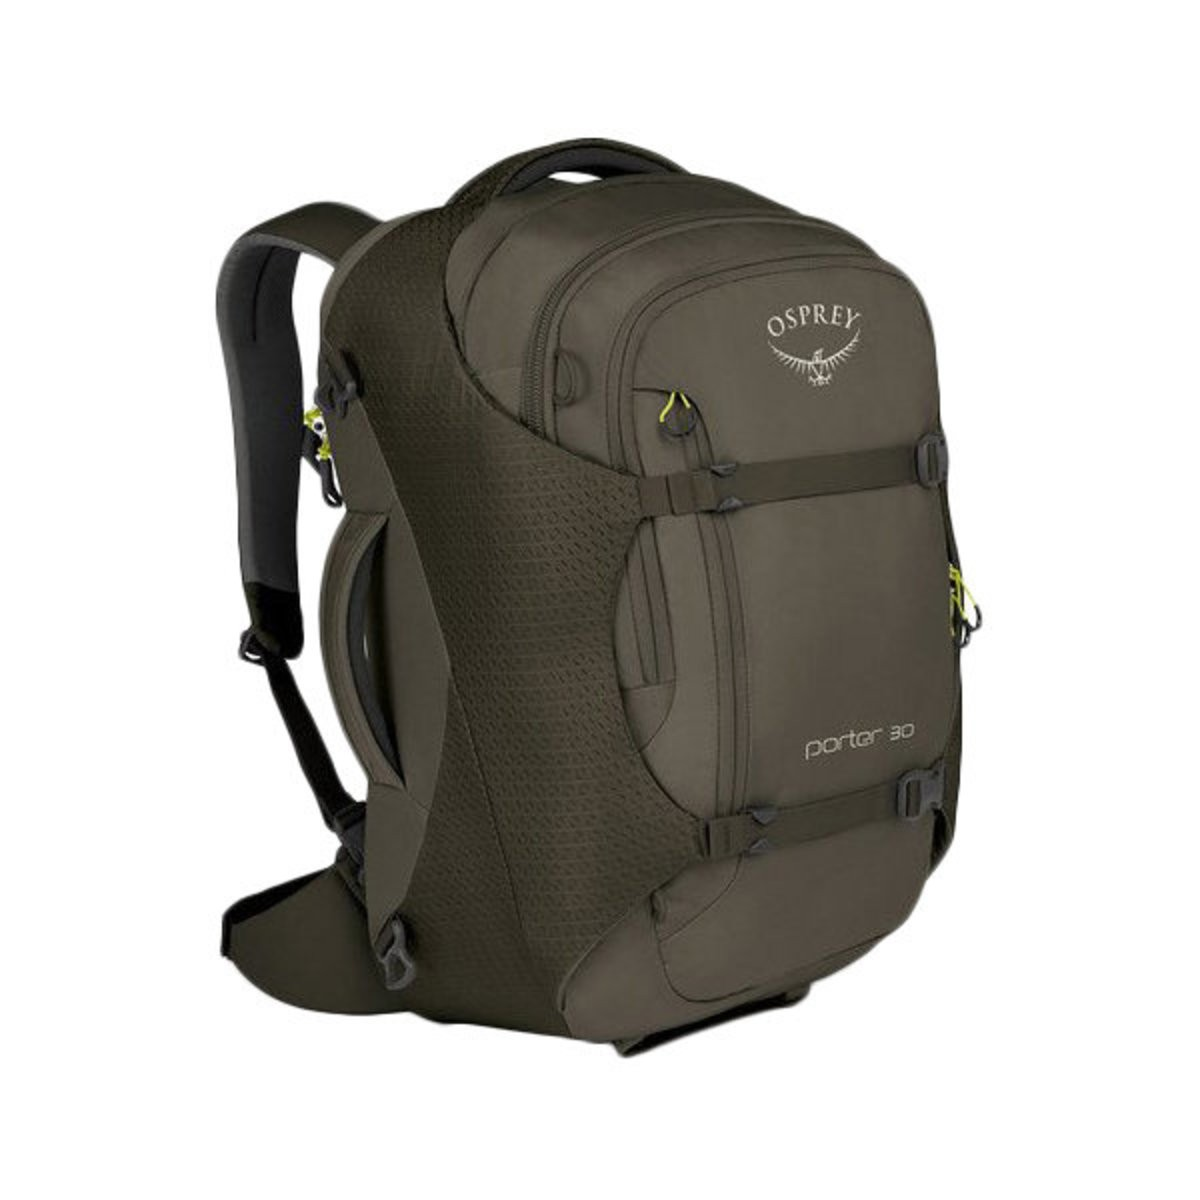 Osprey PORTER 30  CASTLE GREY